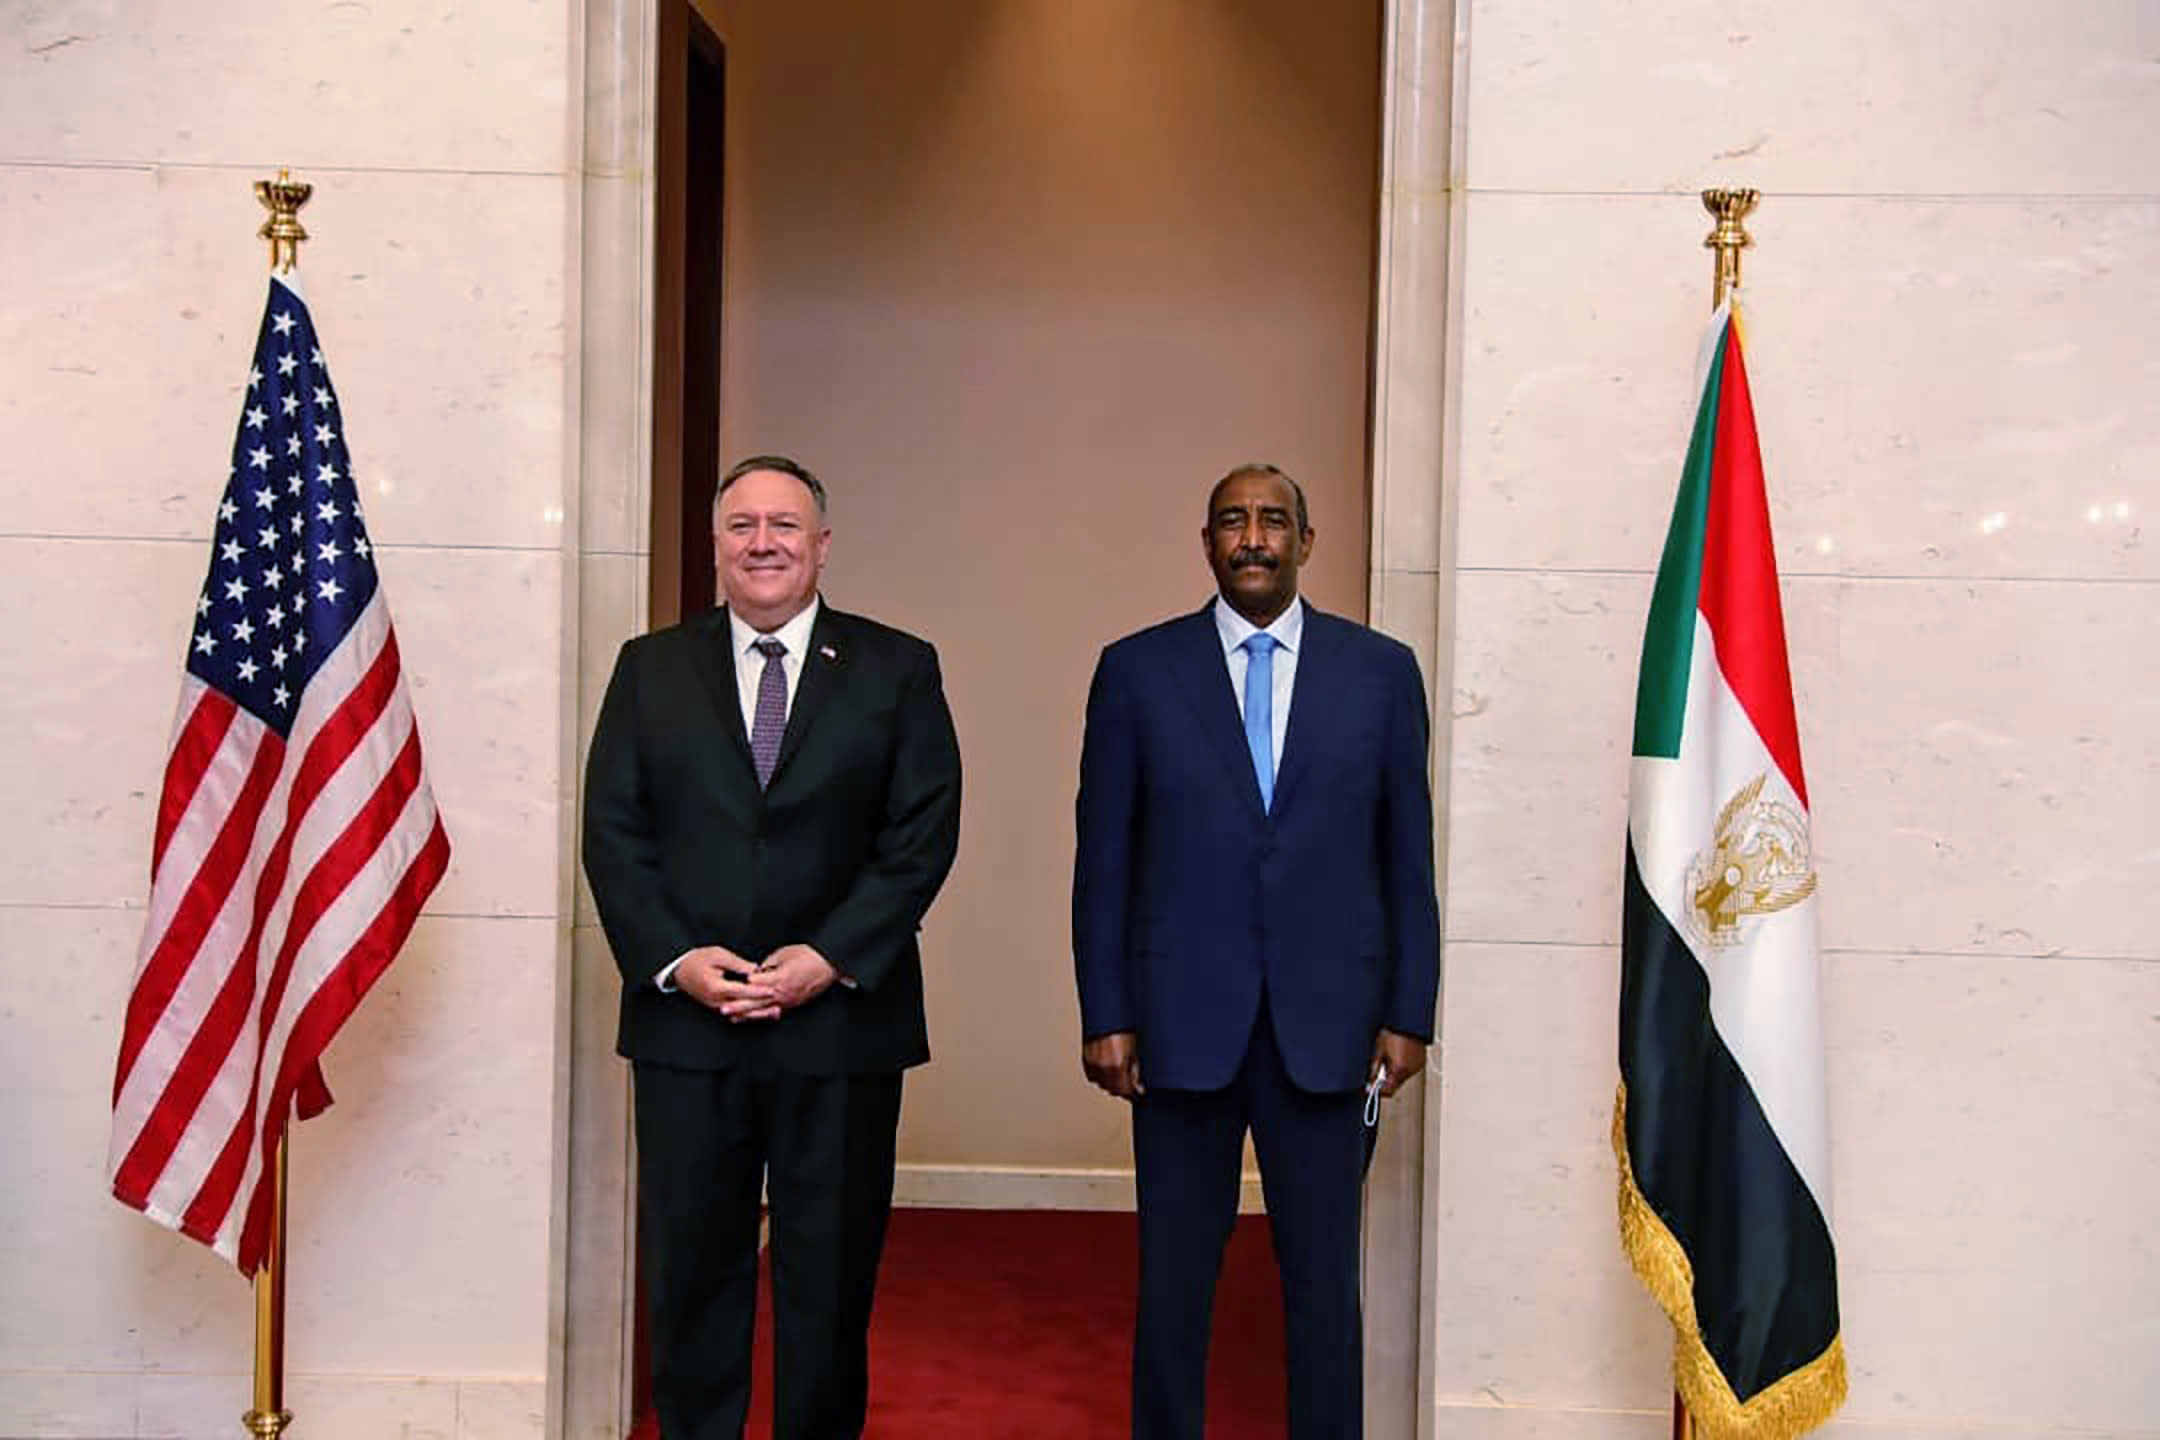 Trump moves to end Sudan terror listing amid Israel ties push